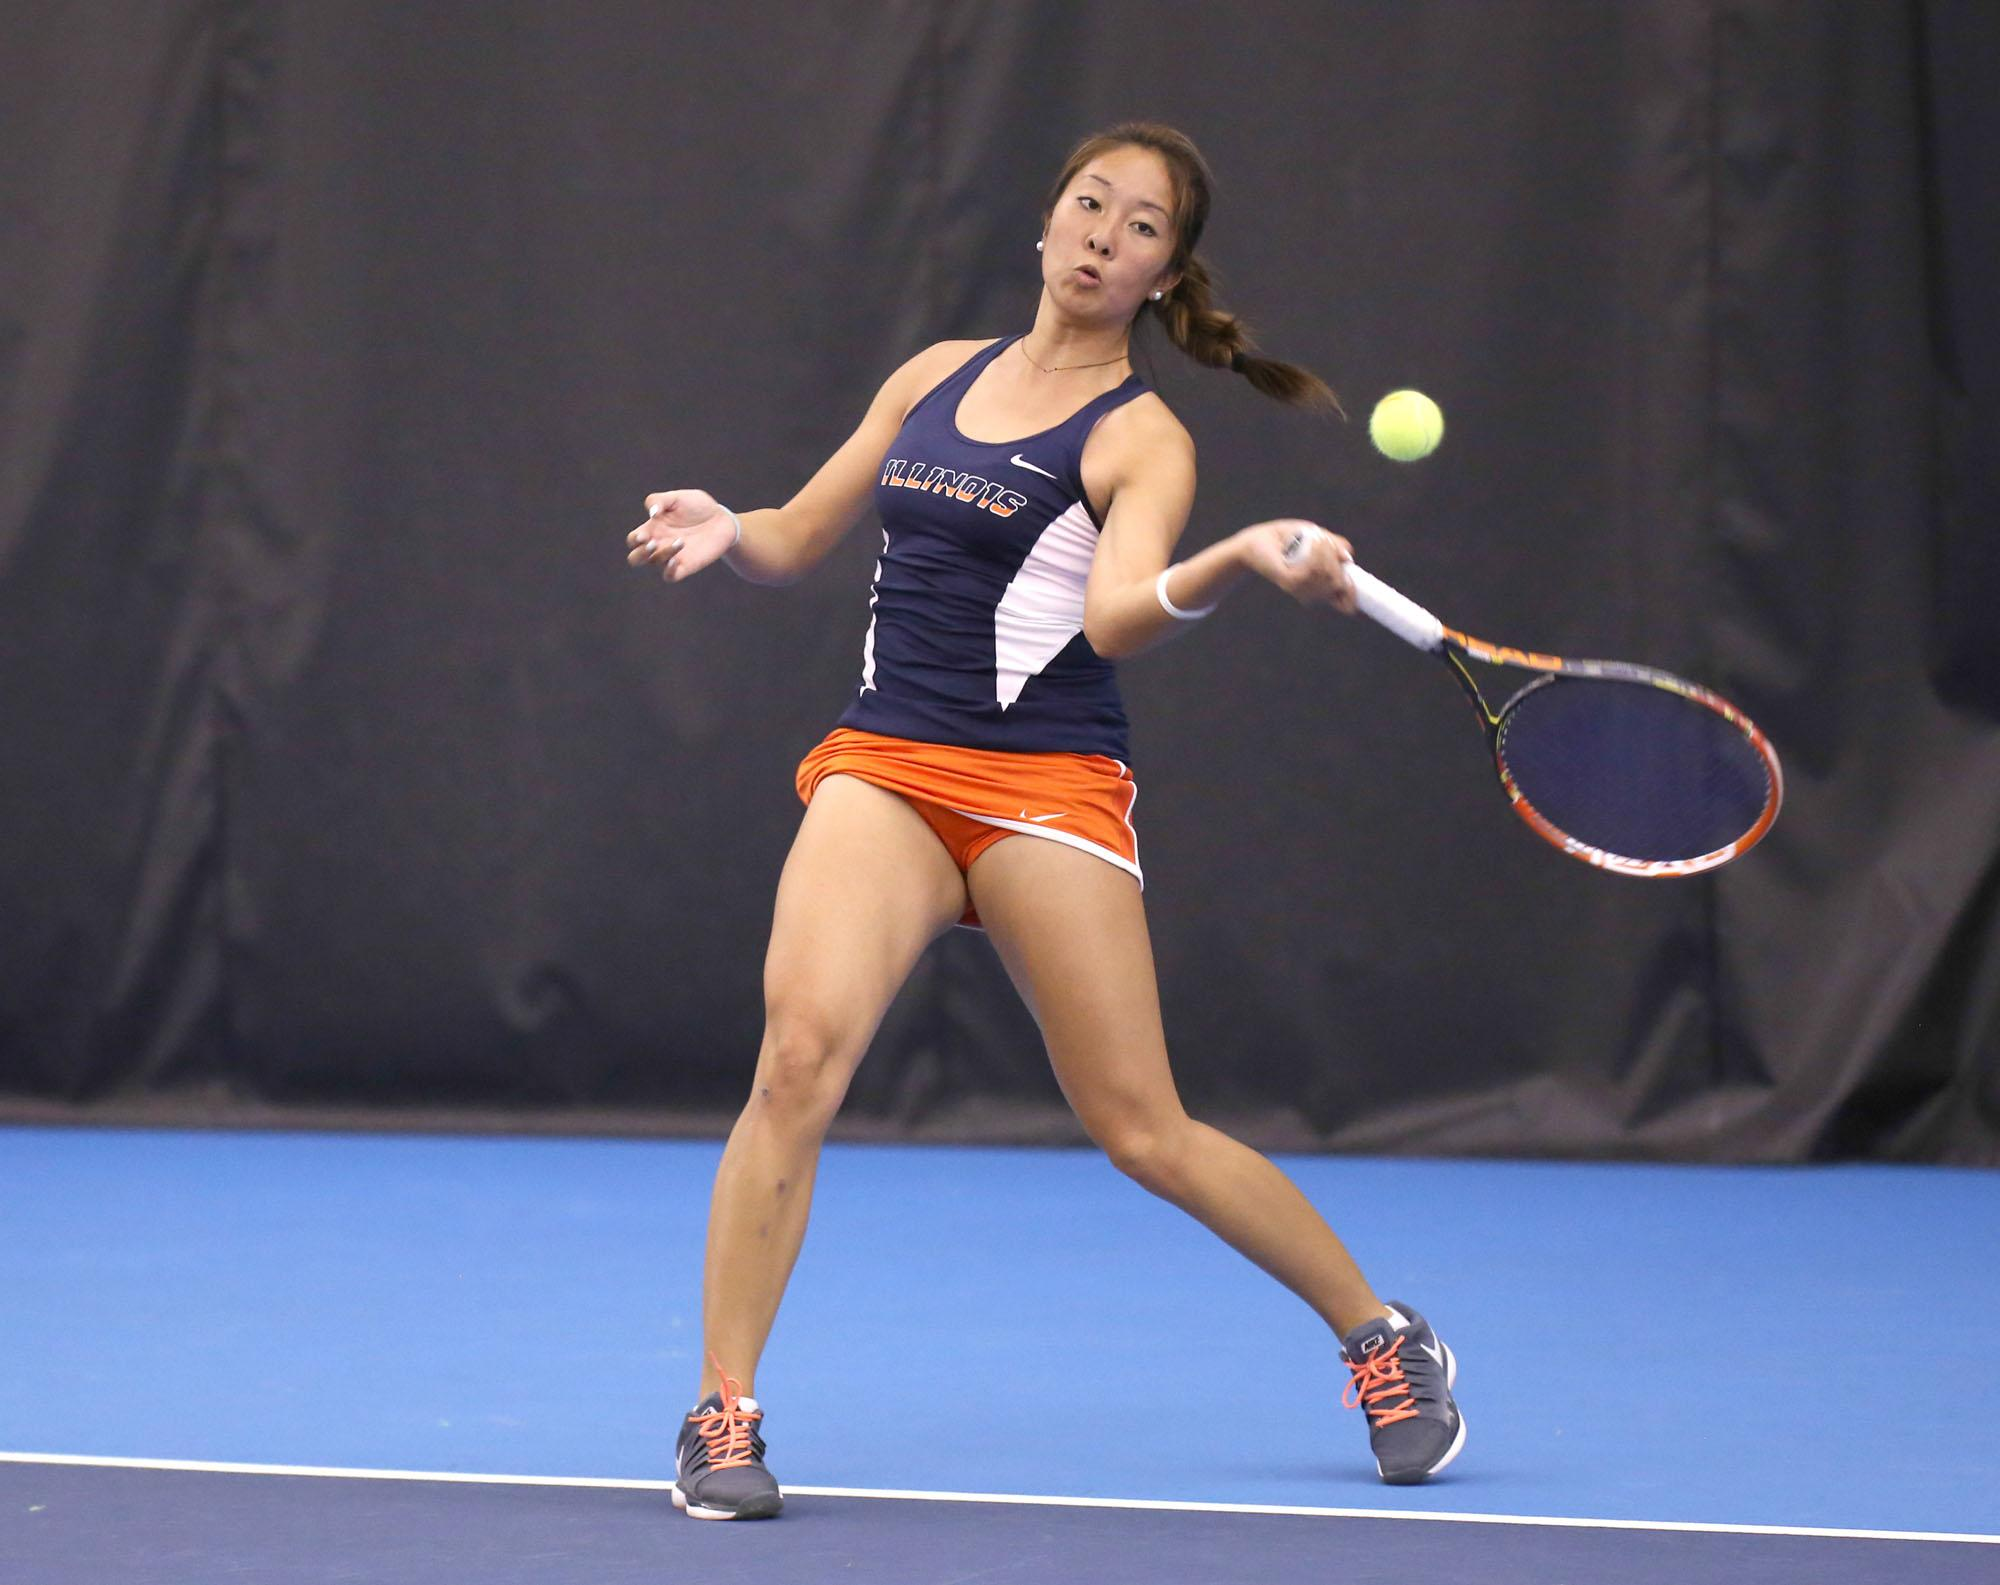 Illinois' Louise Kwong attempts to return the ball during the meet against UIUC at Atkins Tennis Center on Jan. 25, 2015. The Illini won 7-0.